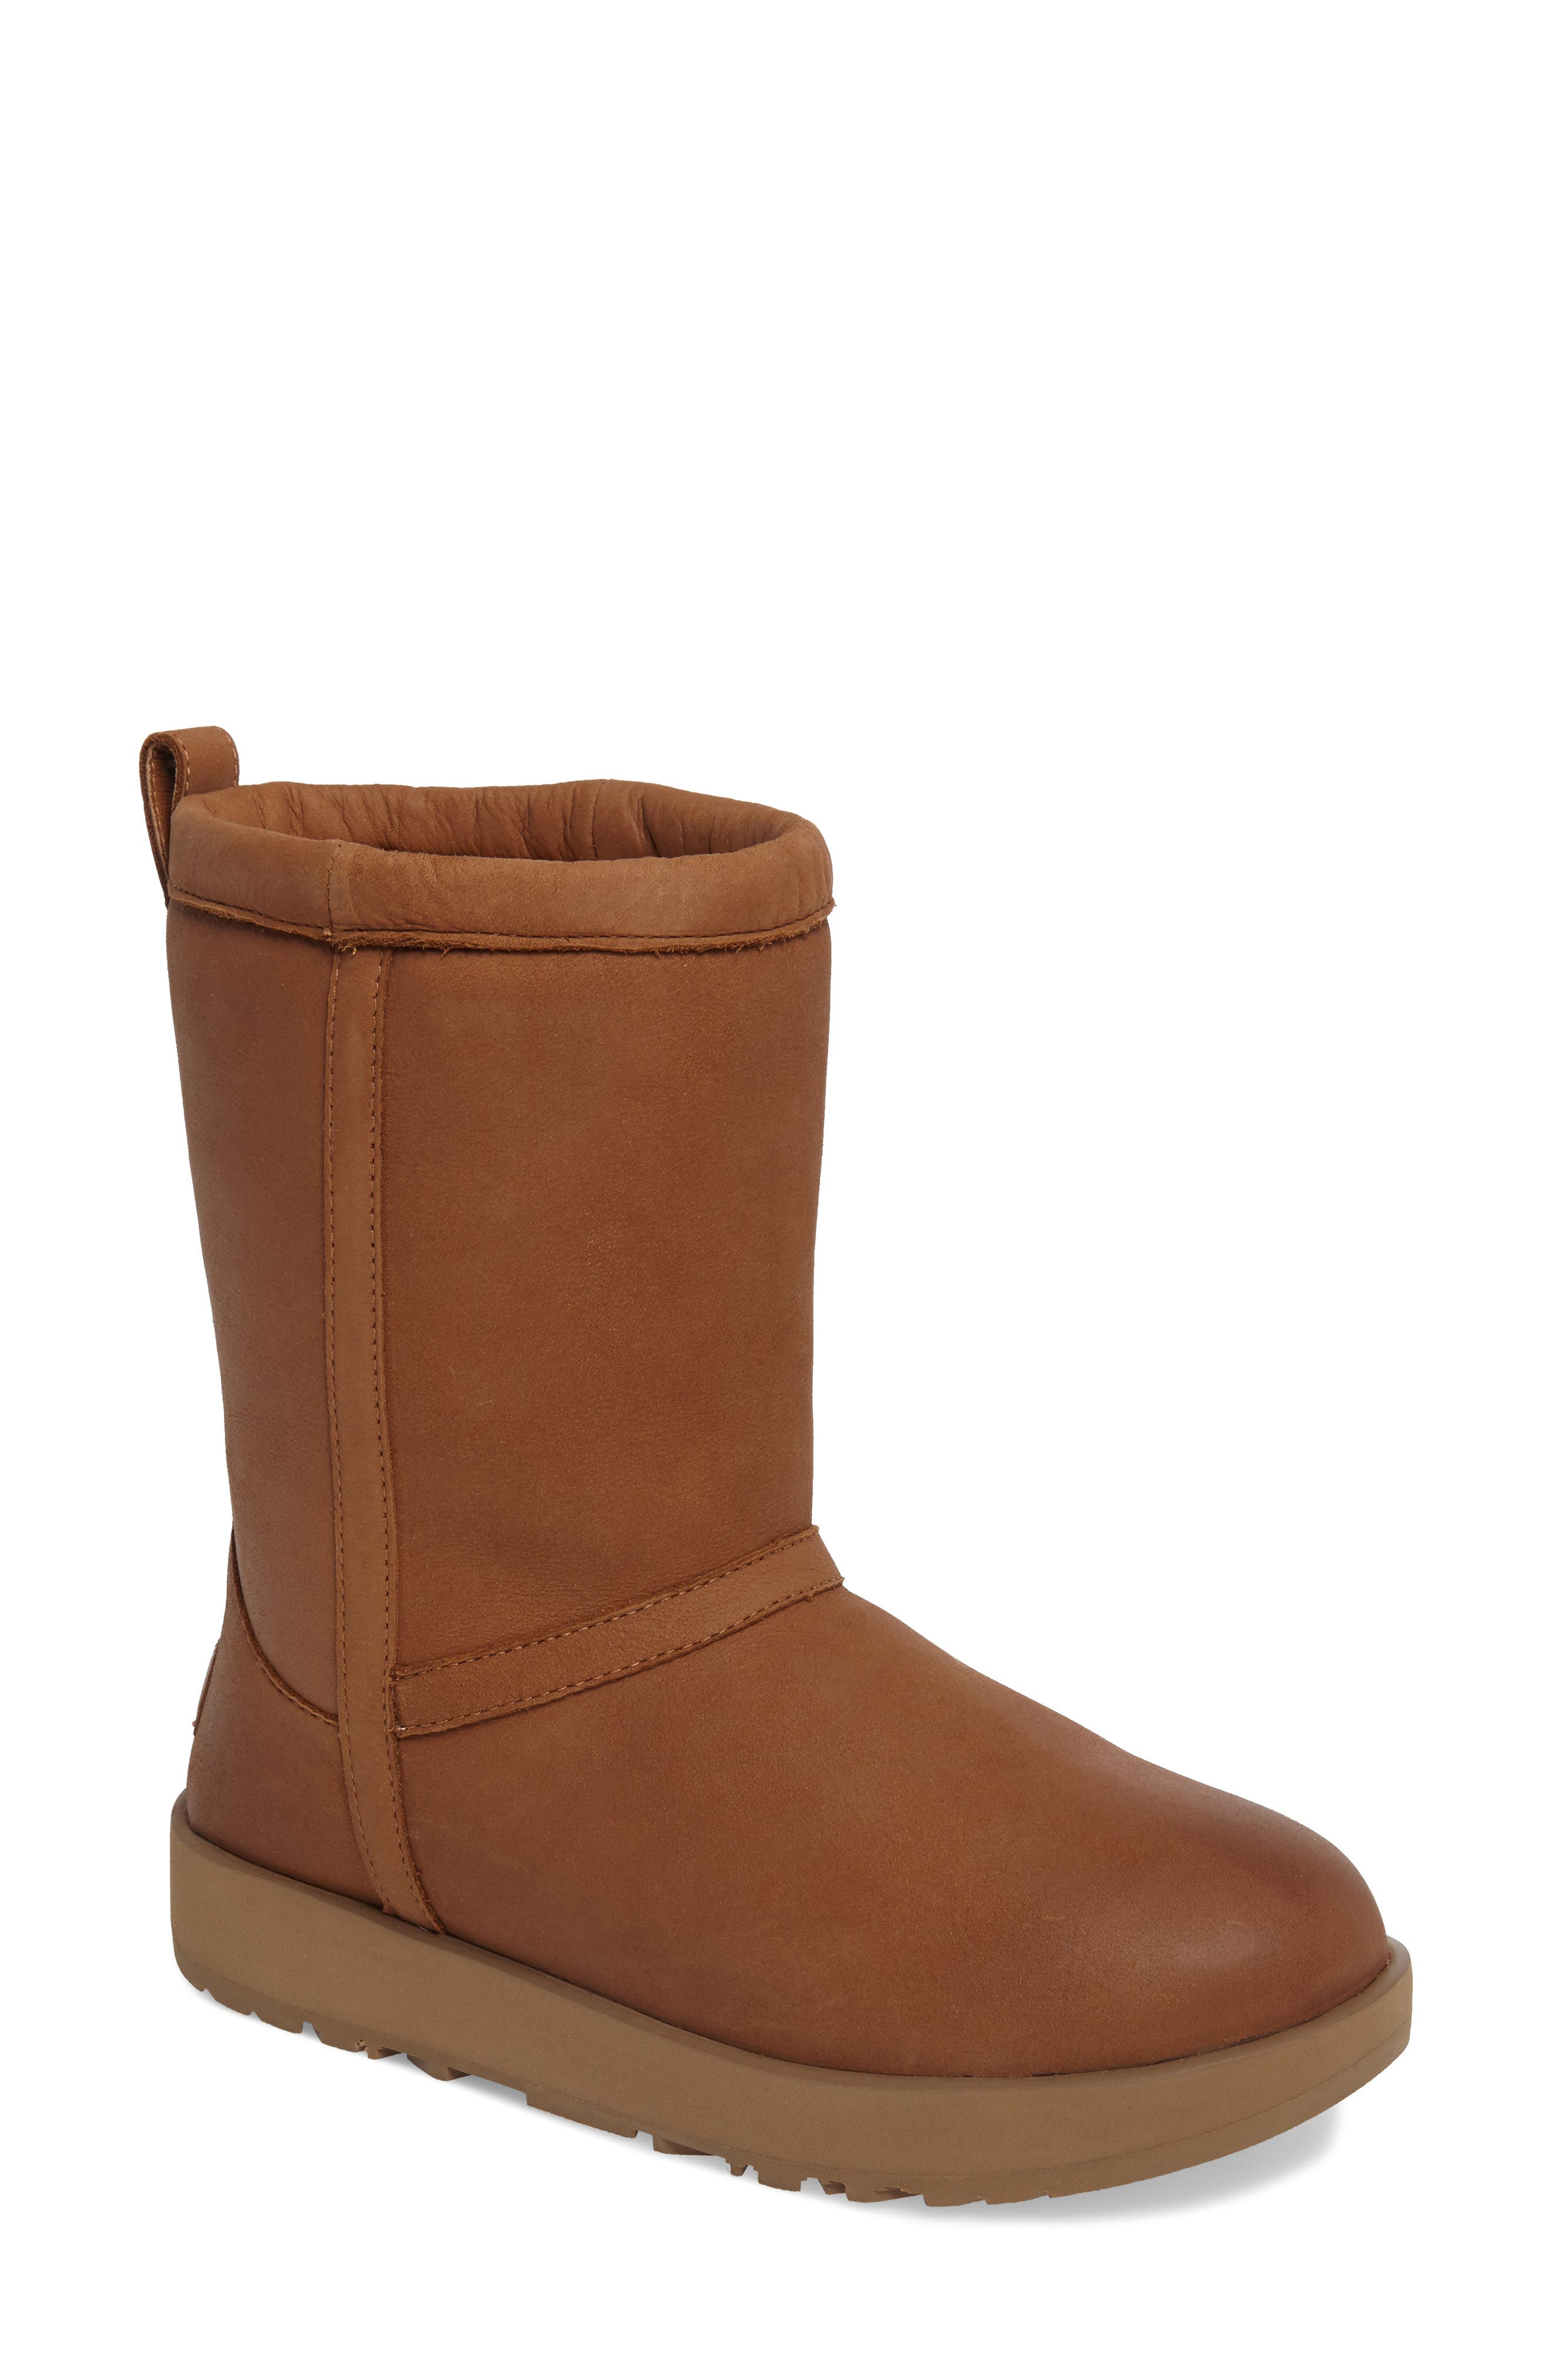 Classic Genuine Shearling Lined Short Waterproof Boot,                         Main,                         color, Chestnut Leather